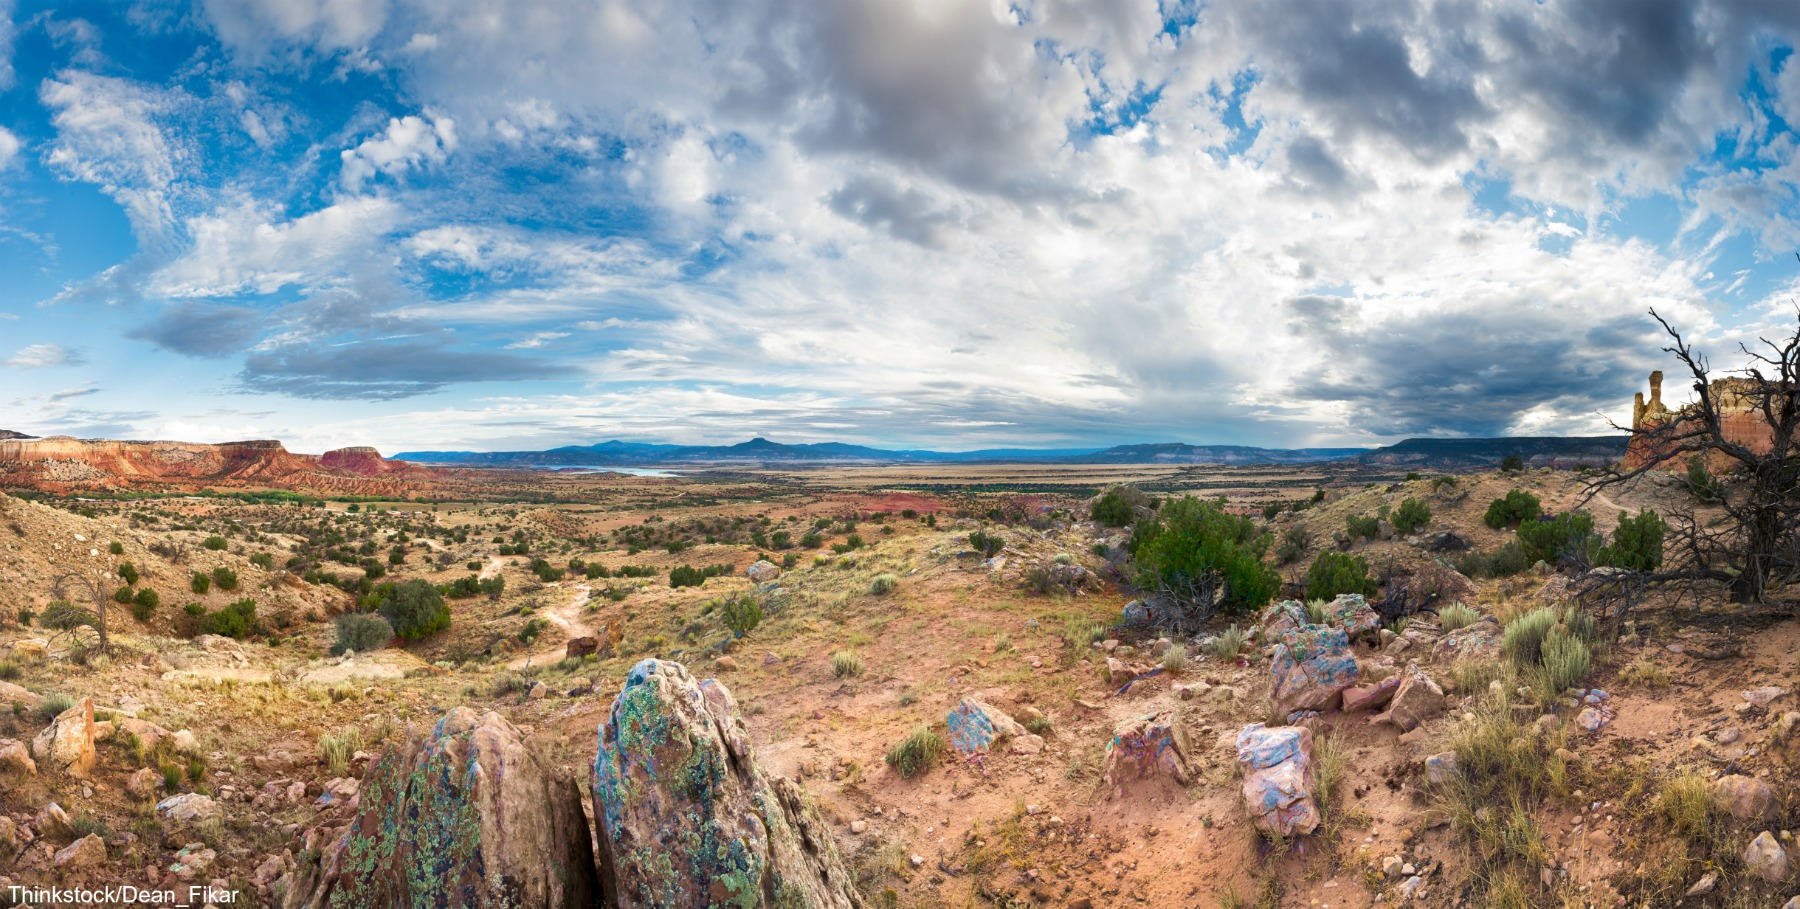 Panoramic view of the red rocks area in northern New Mexico